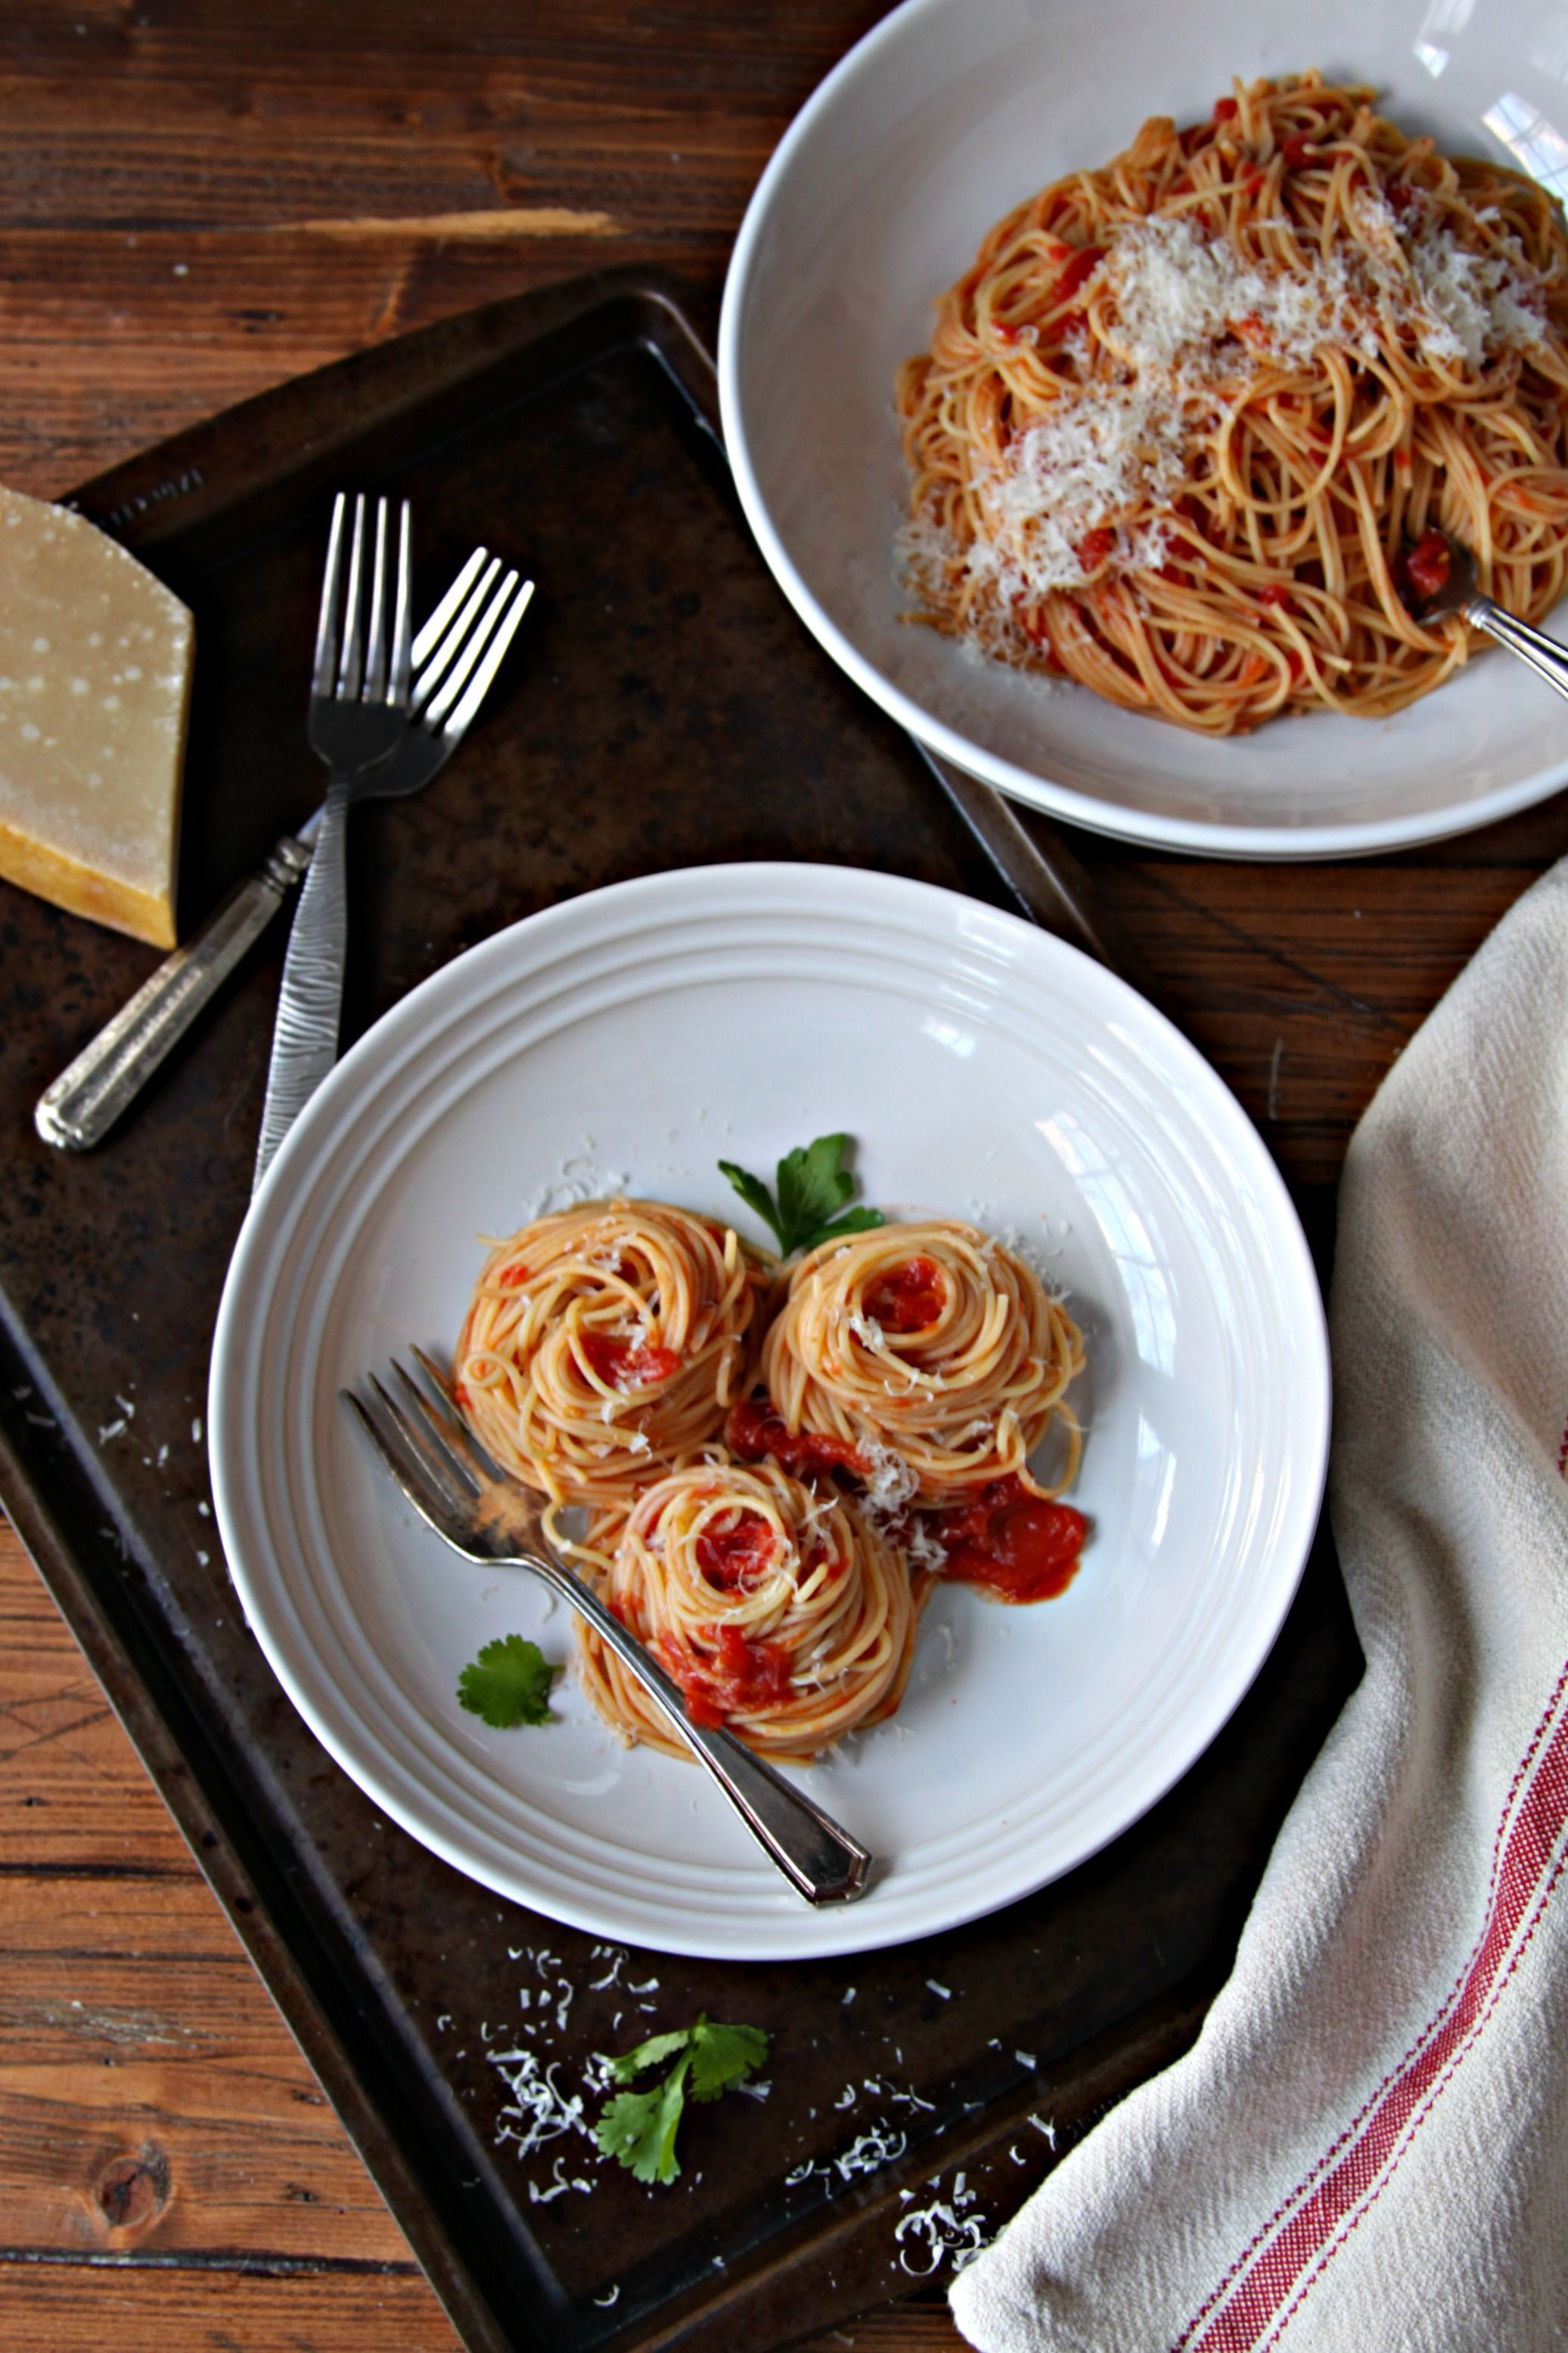 Spaghetti with Butter Roasted Tomato Sauce is perfect for winter because it uses canned tomatoes. Roasting them in butter brings out the flavor.